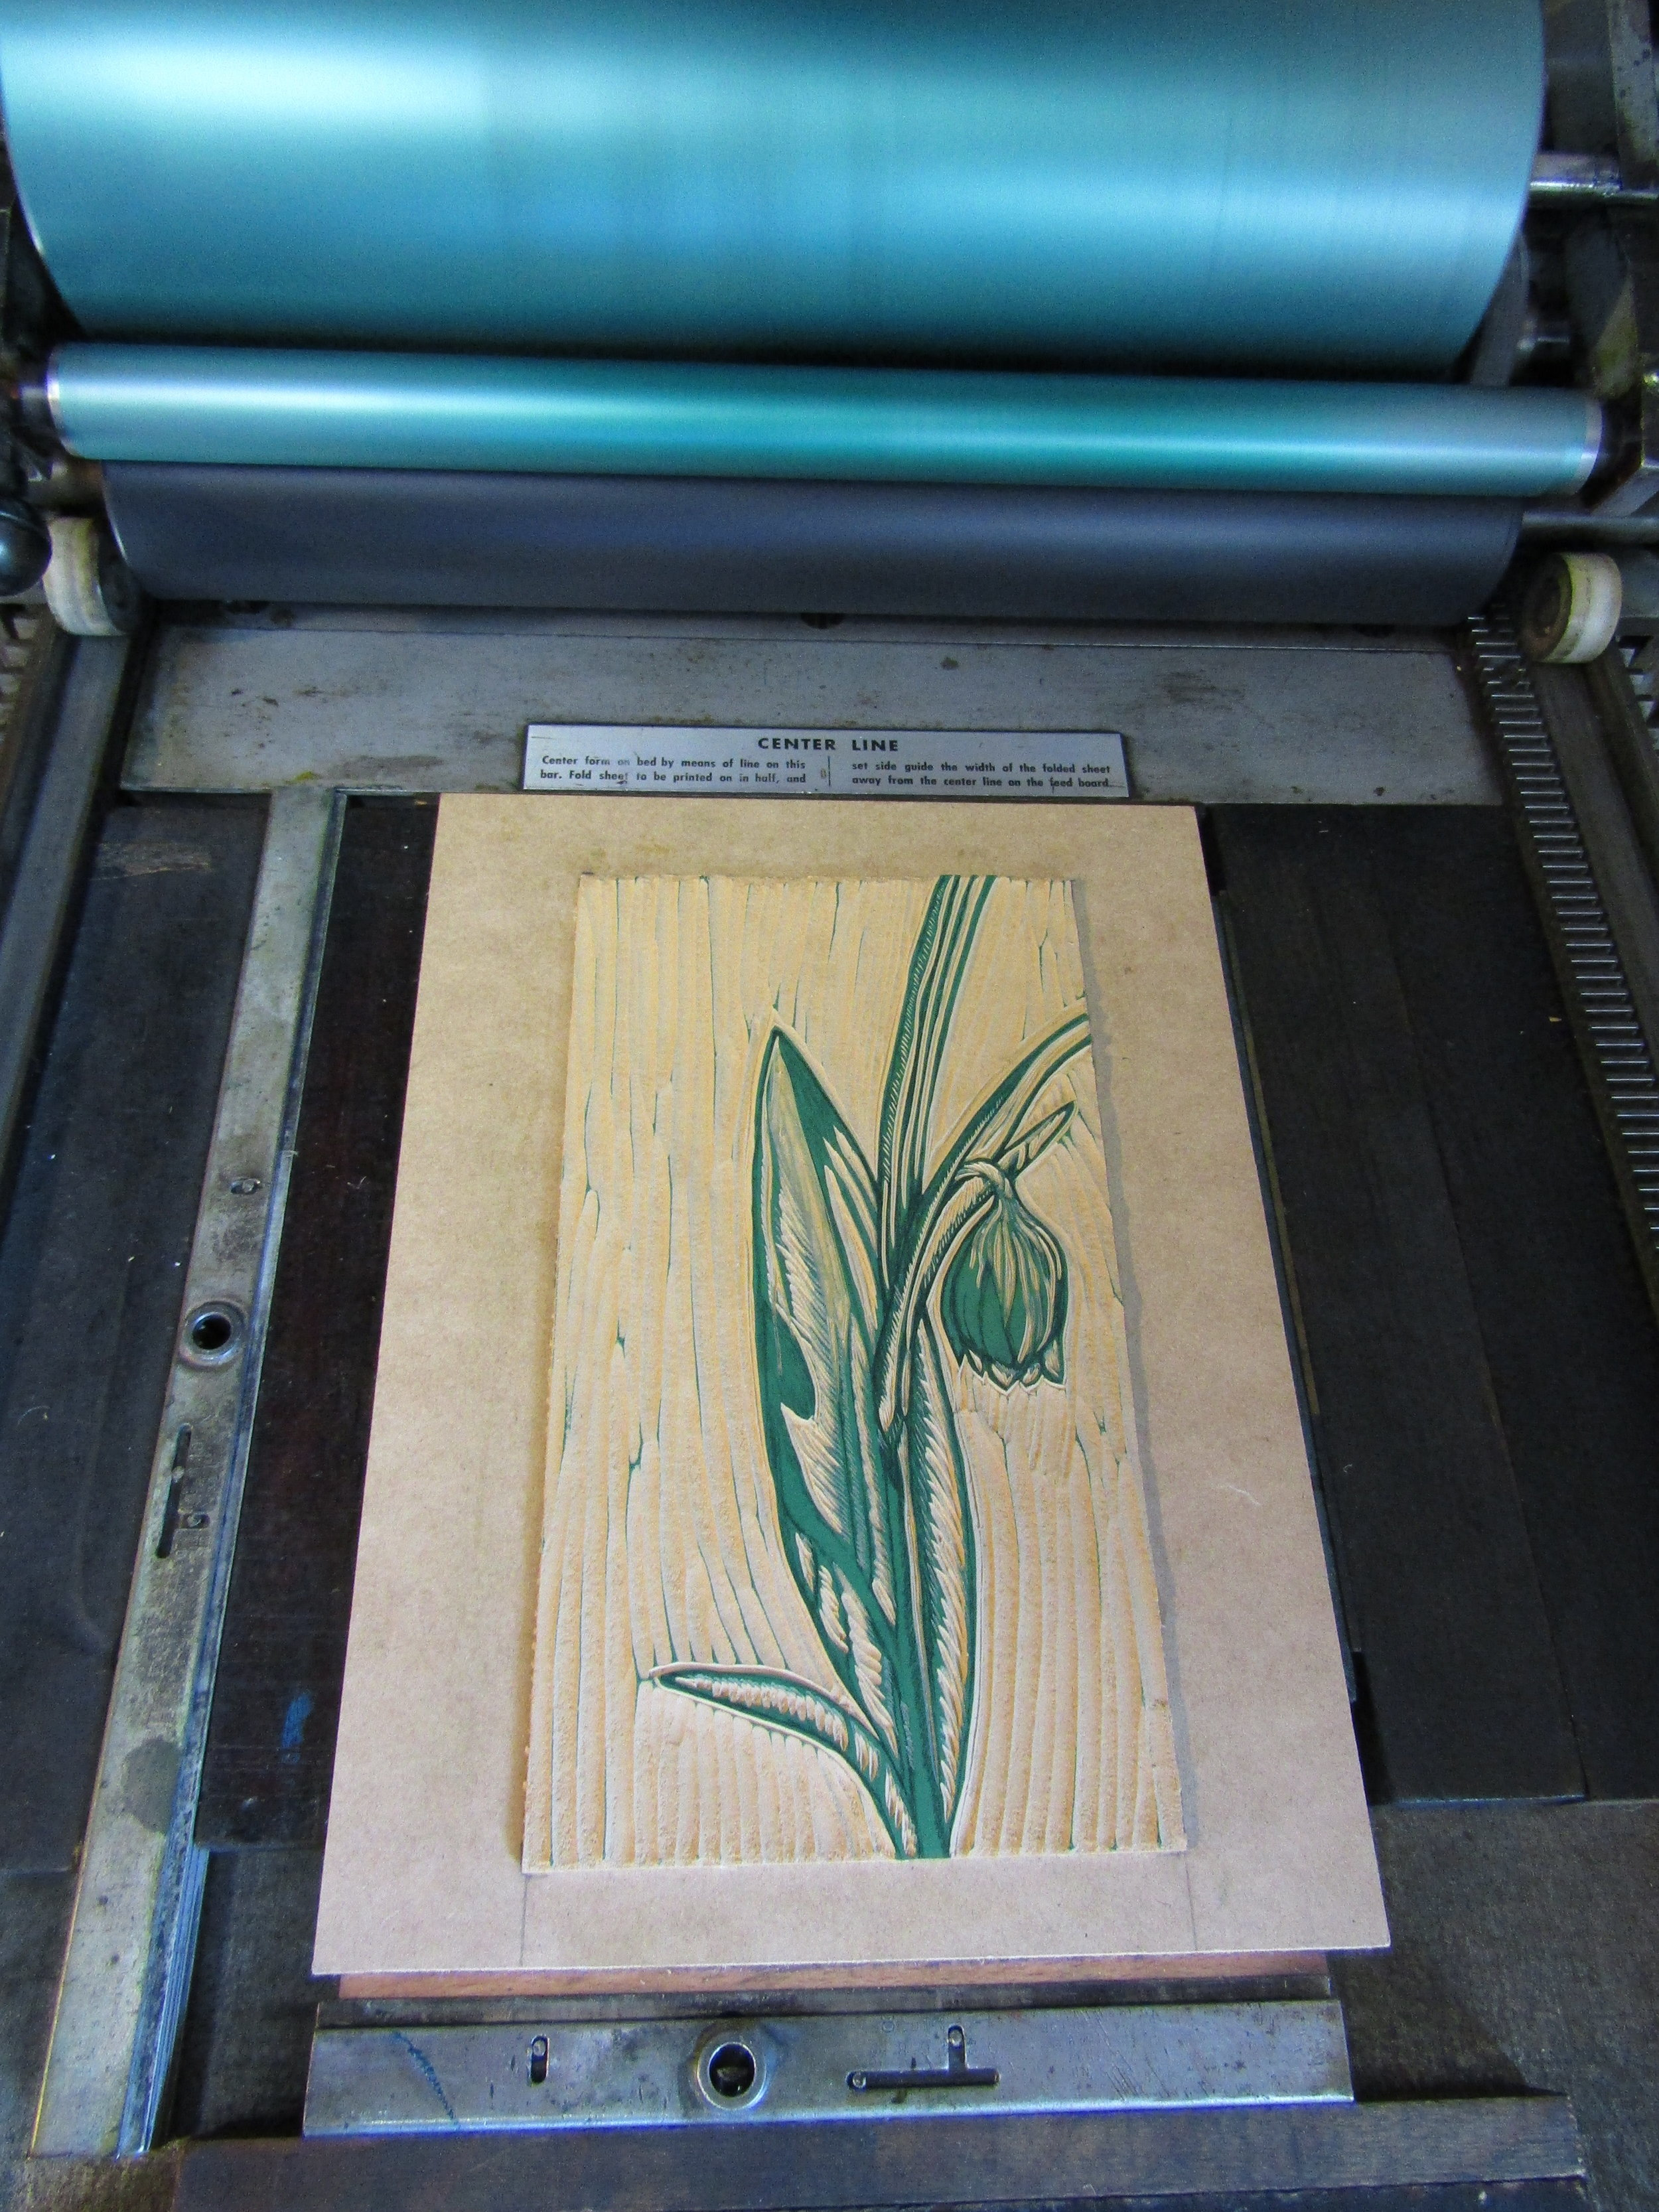 I am printing the third color - a lovely teal. The background is now carved away and I will work solely with the flower and leaves for the remainder of this print.